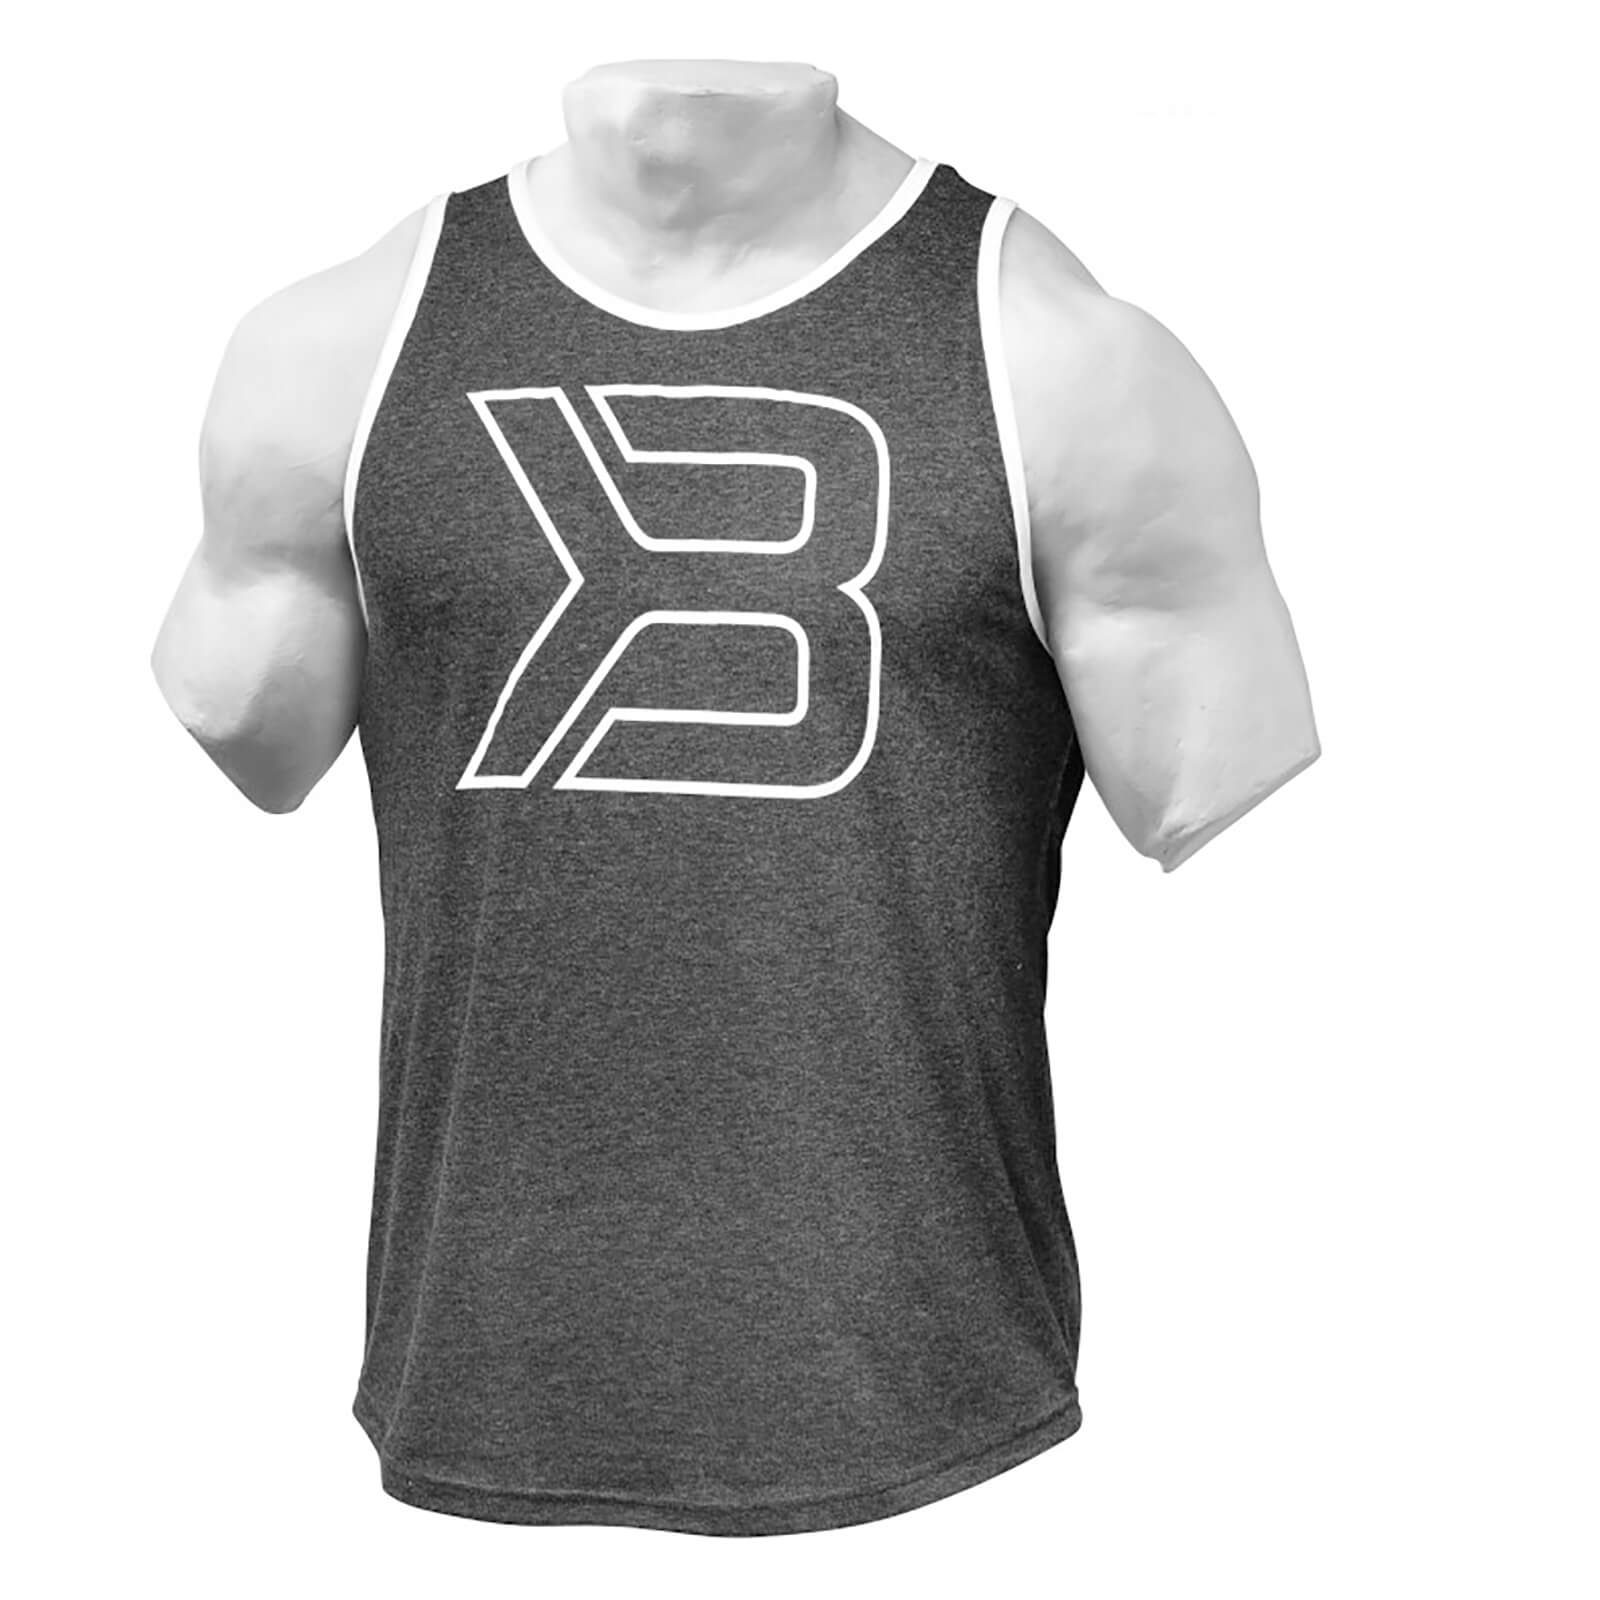 Better Bodies Jersey Tank Top - Antracite Melange - S